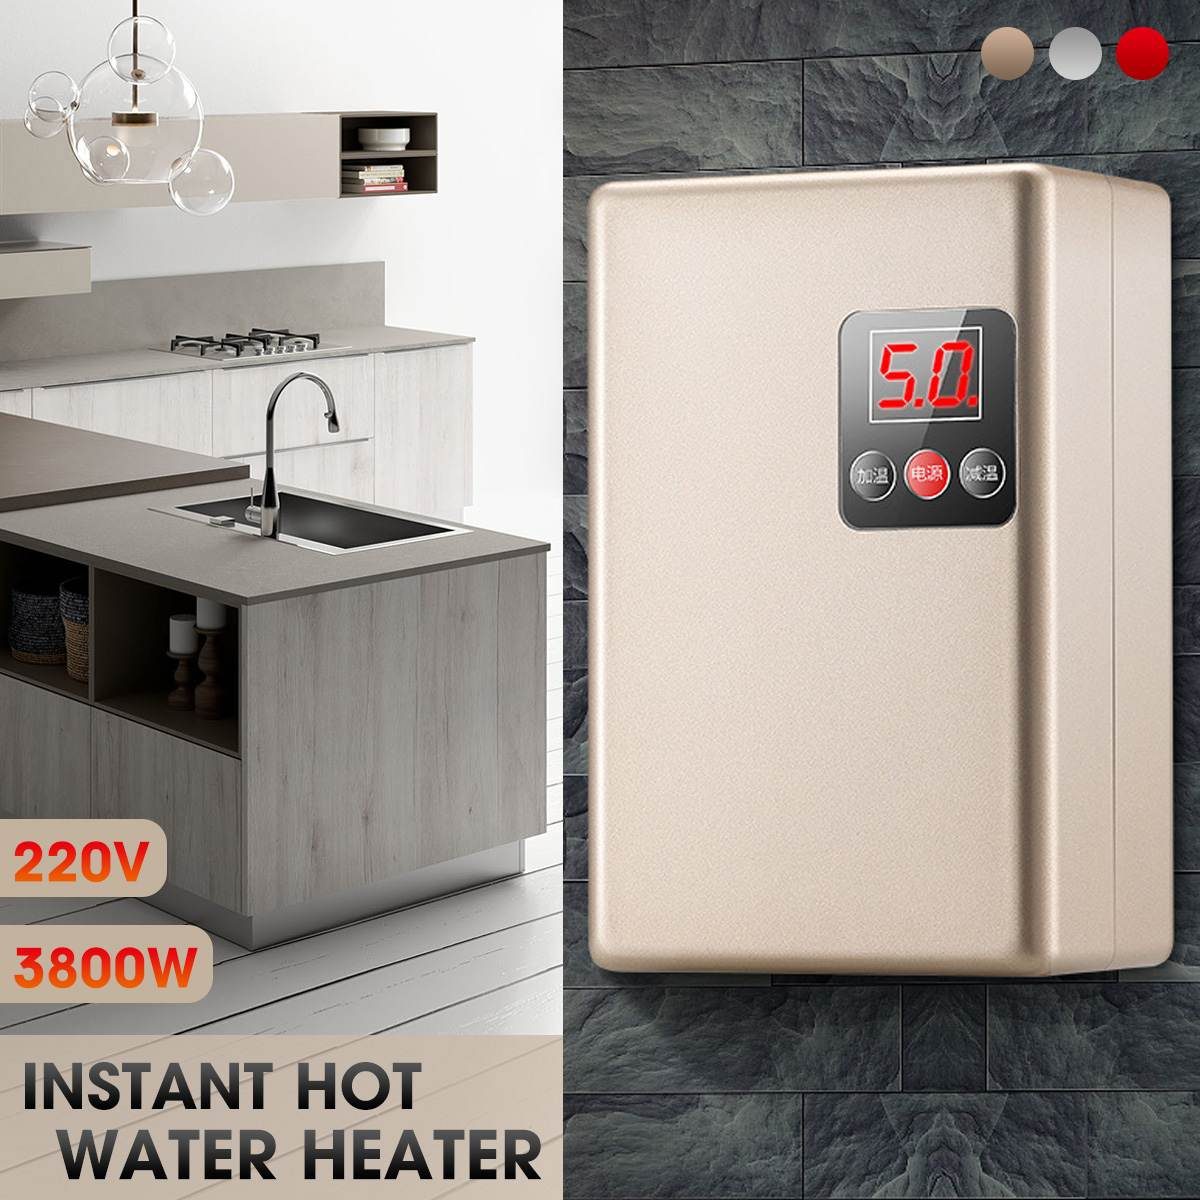 220V 3800W Shower Instant Water-Heater Tankless Water Heater Electric Heating Instant Hot Water for Kitchen and Bathroom(China)